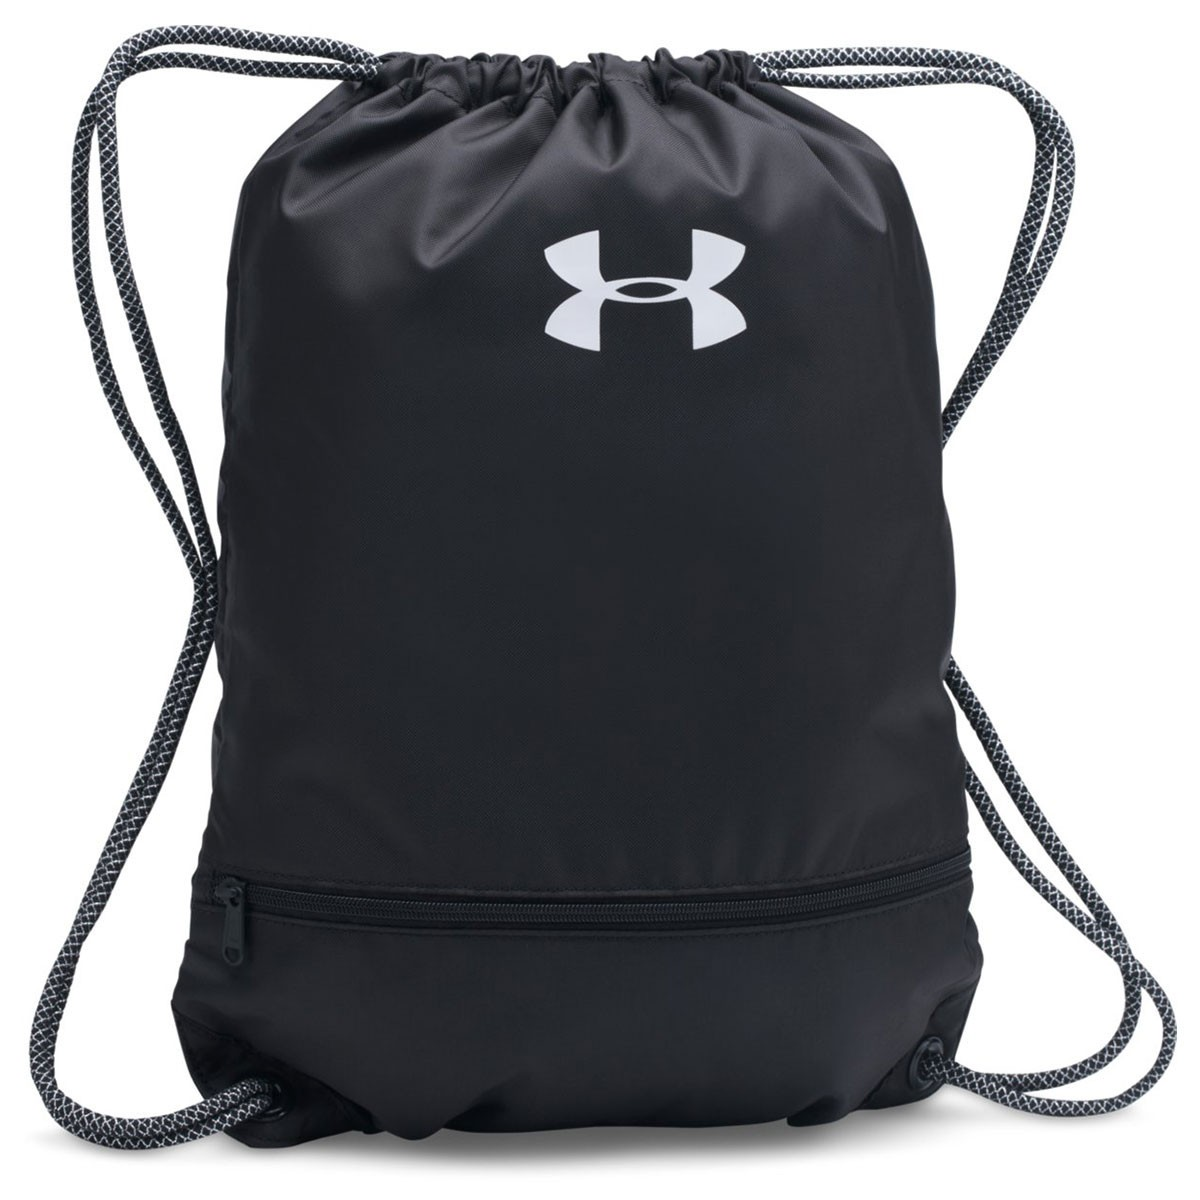 Under Armour UA Team Sackpack Drawstring Backpack 3543be12ea7d3